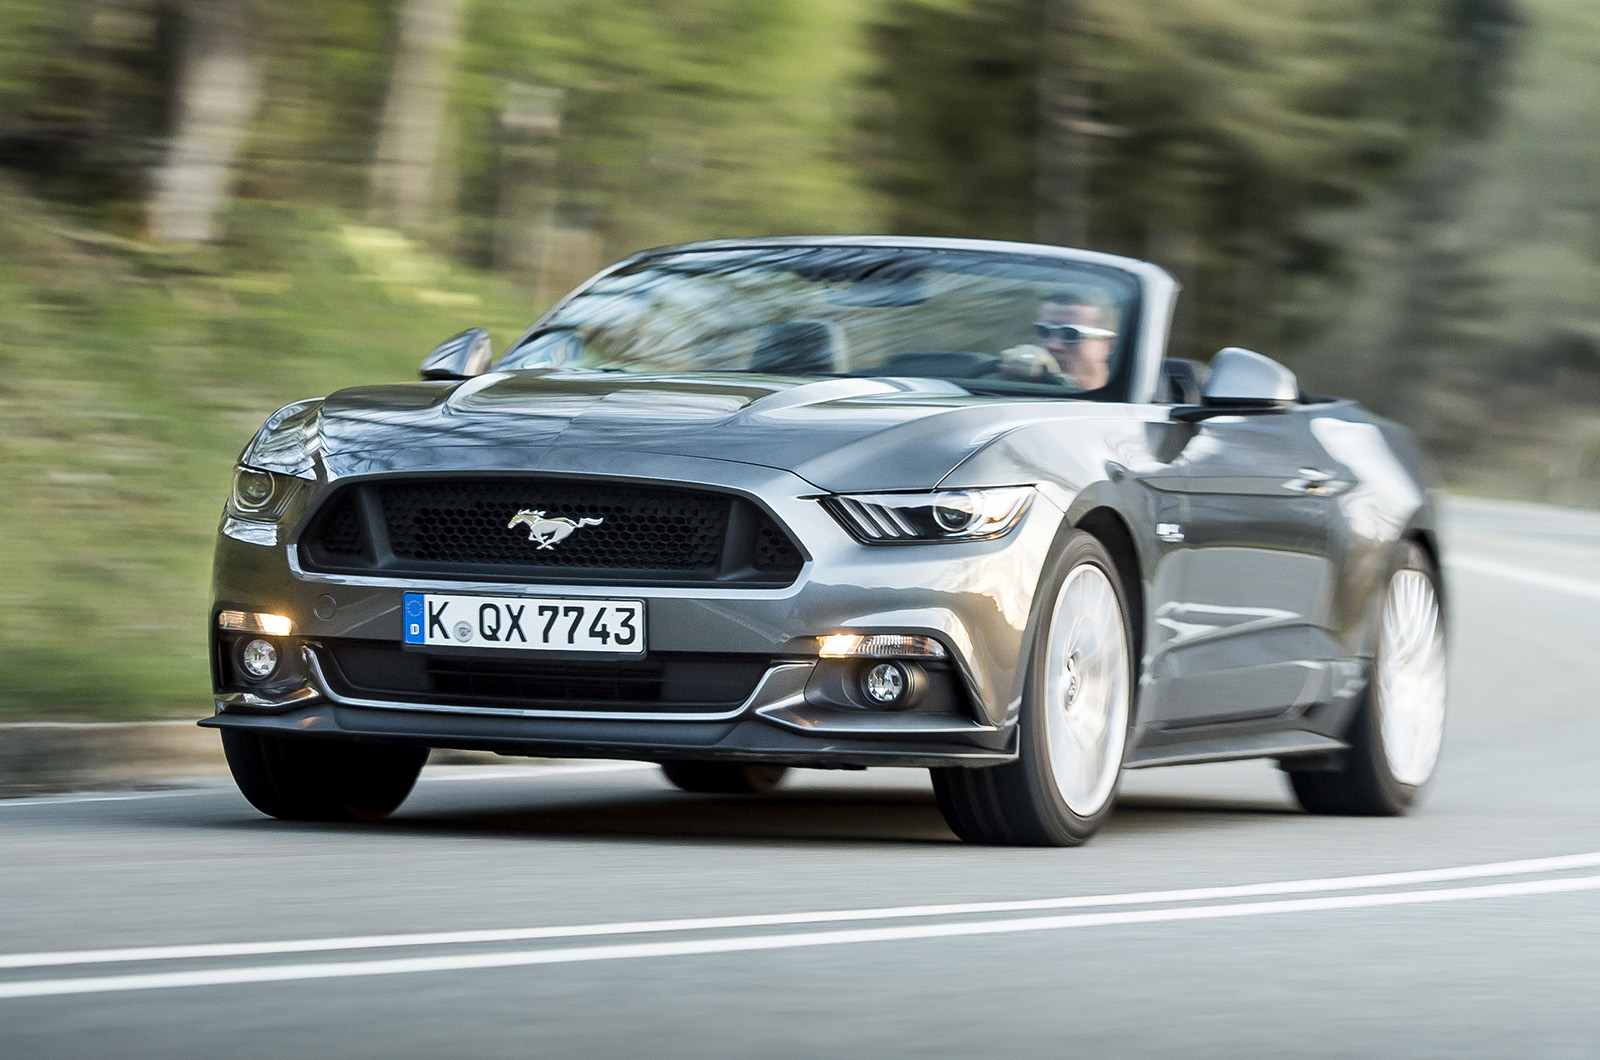 2015 Ford Mustang Convertible 23 Ecoboost Review Autocar